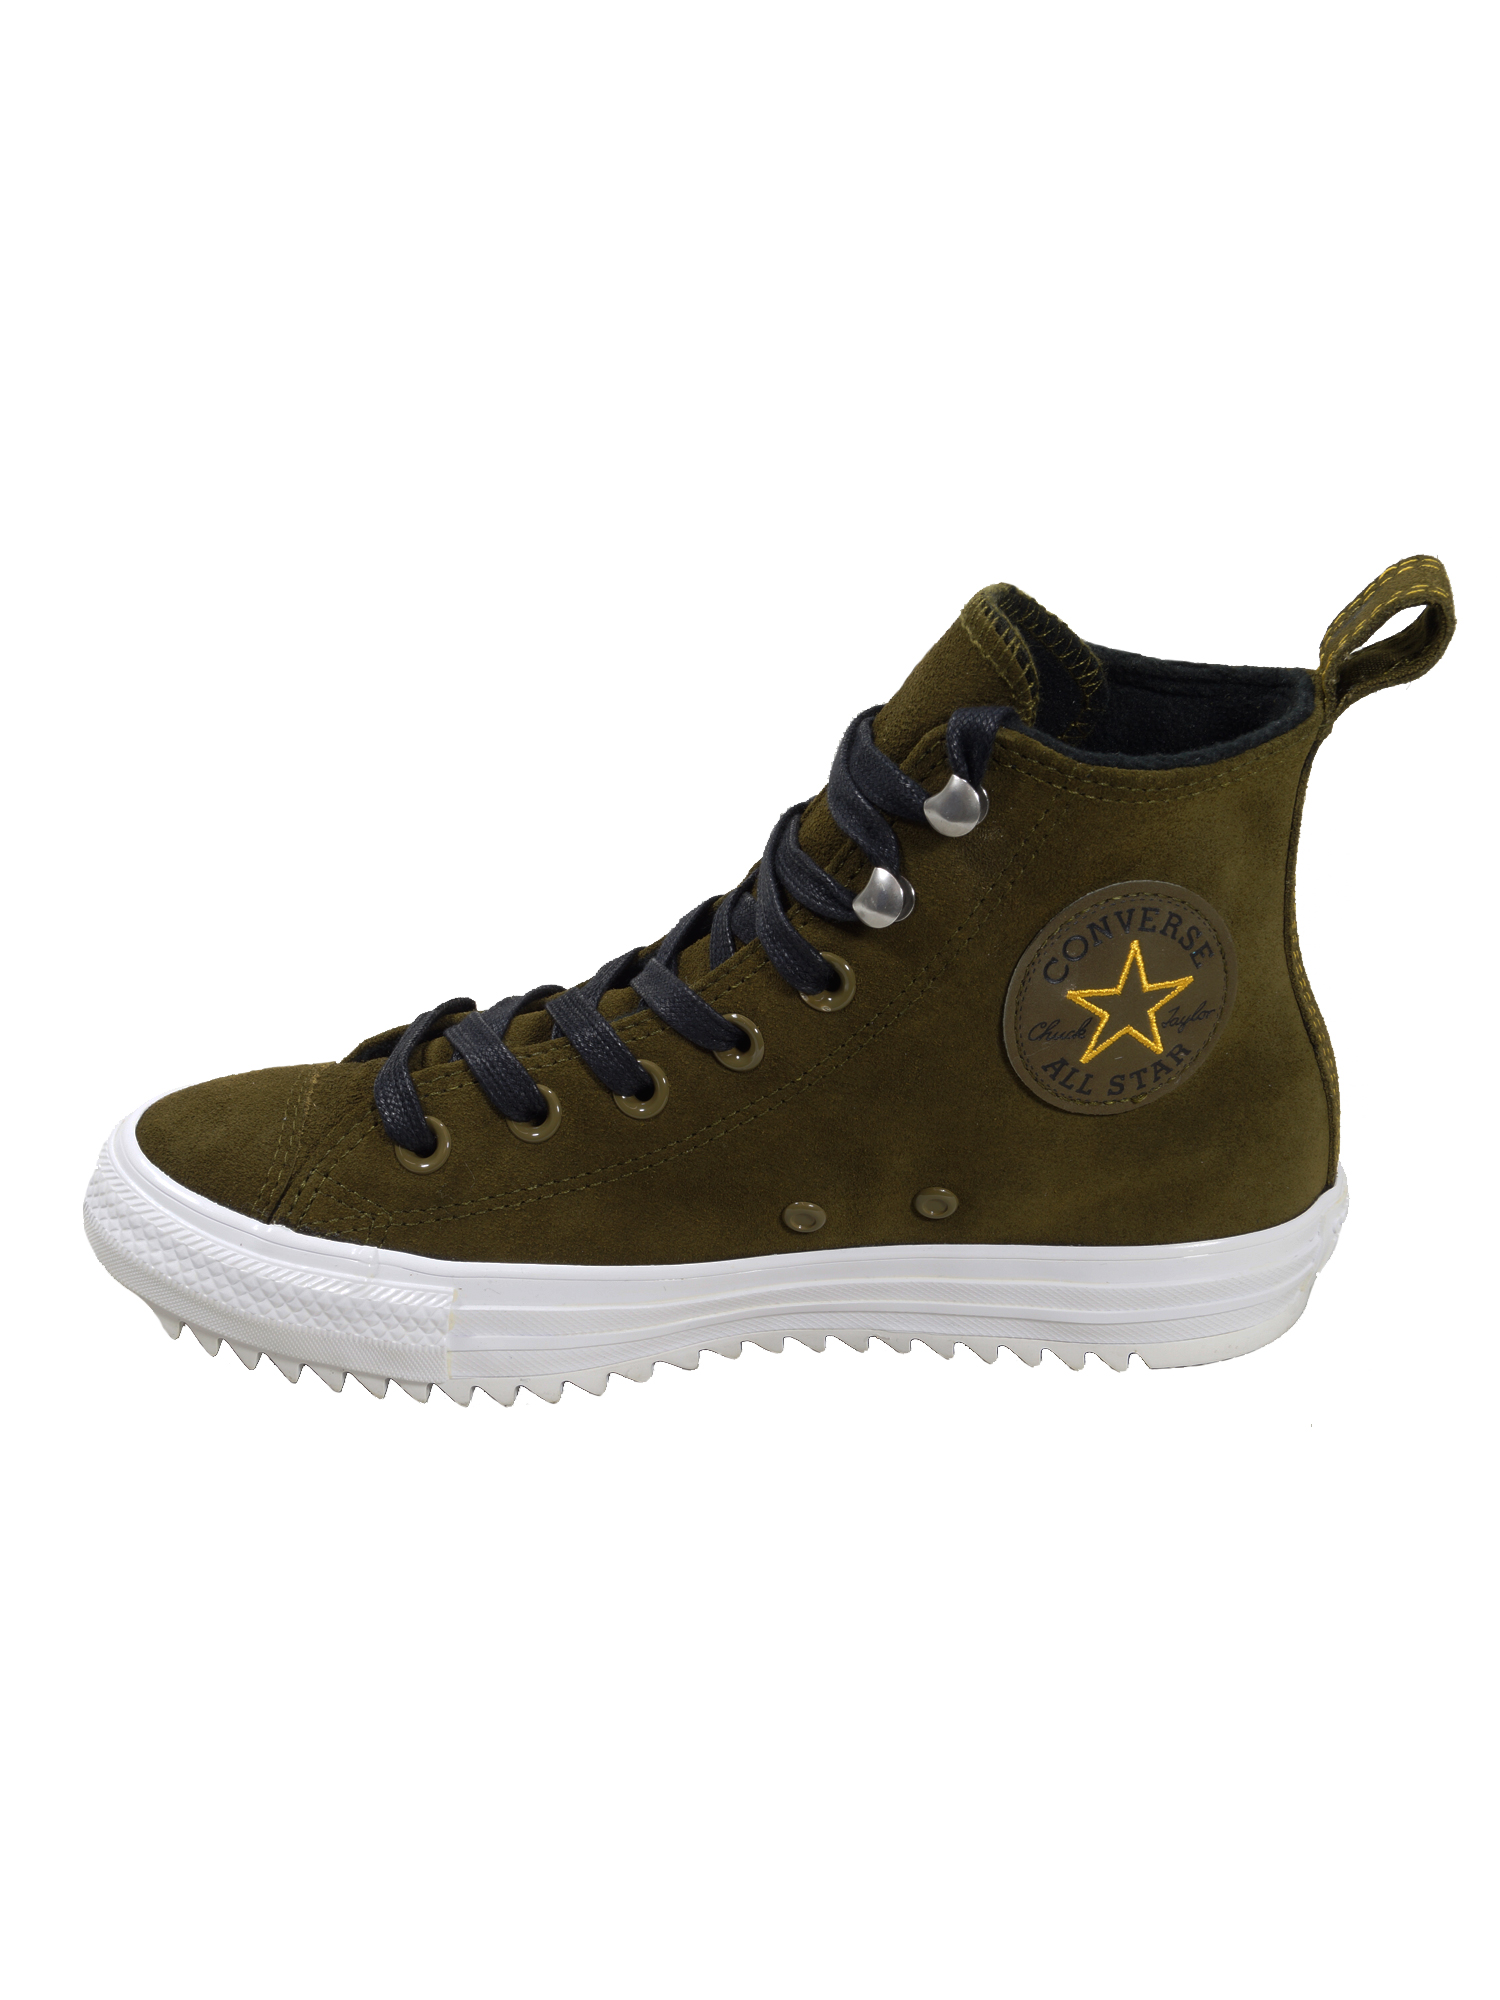 Converse Damen Schuhe CT All Star Hiker Hi Oliv Leder Sneakers 37.5 EU